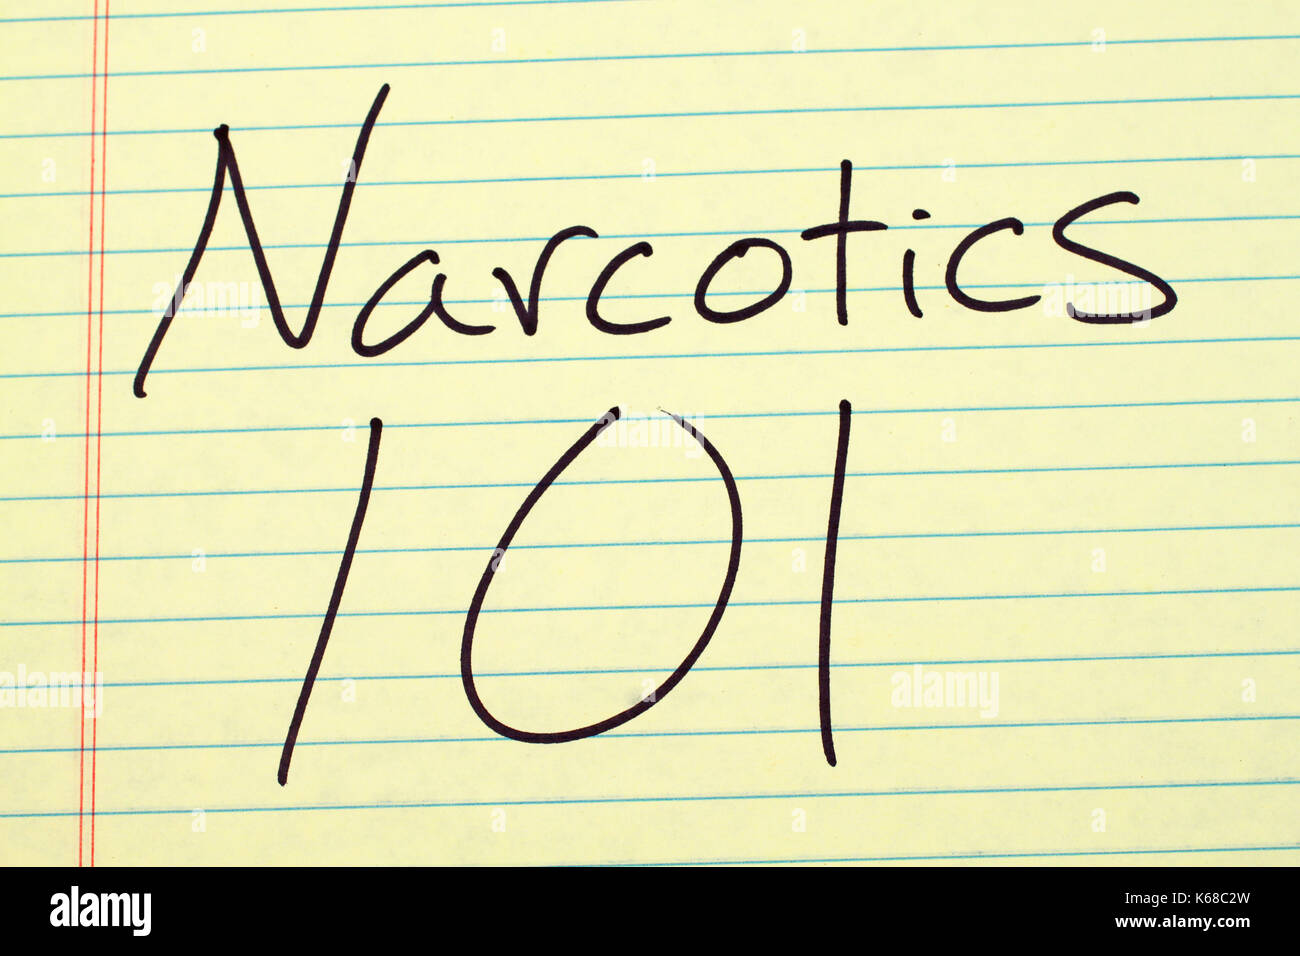 The words 'Narcotics 101' on a yellow legal pad - Stock Image